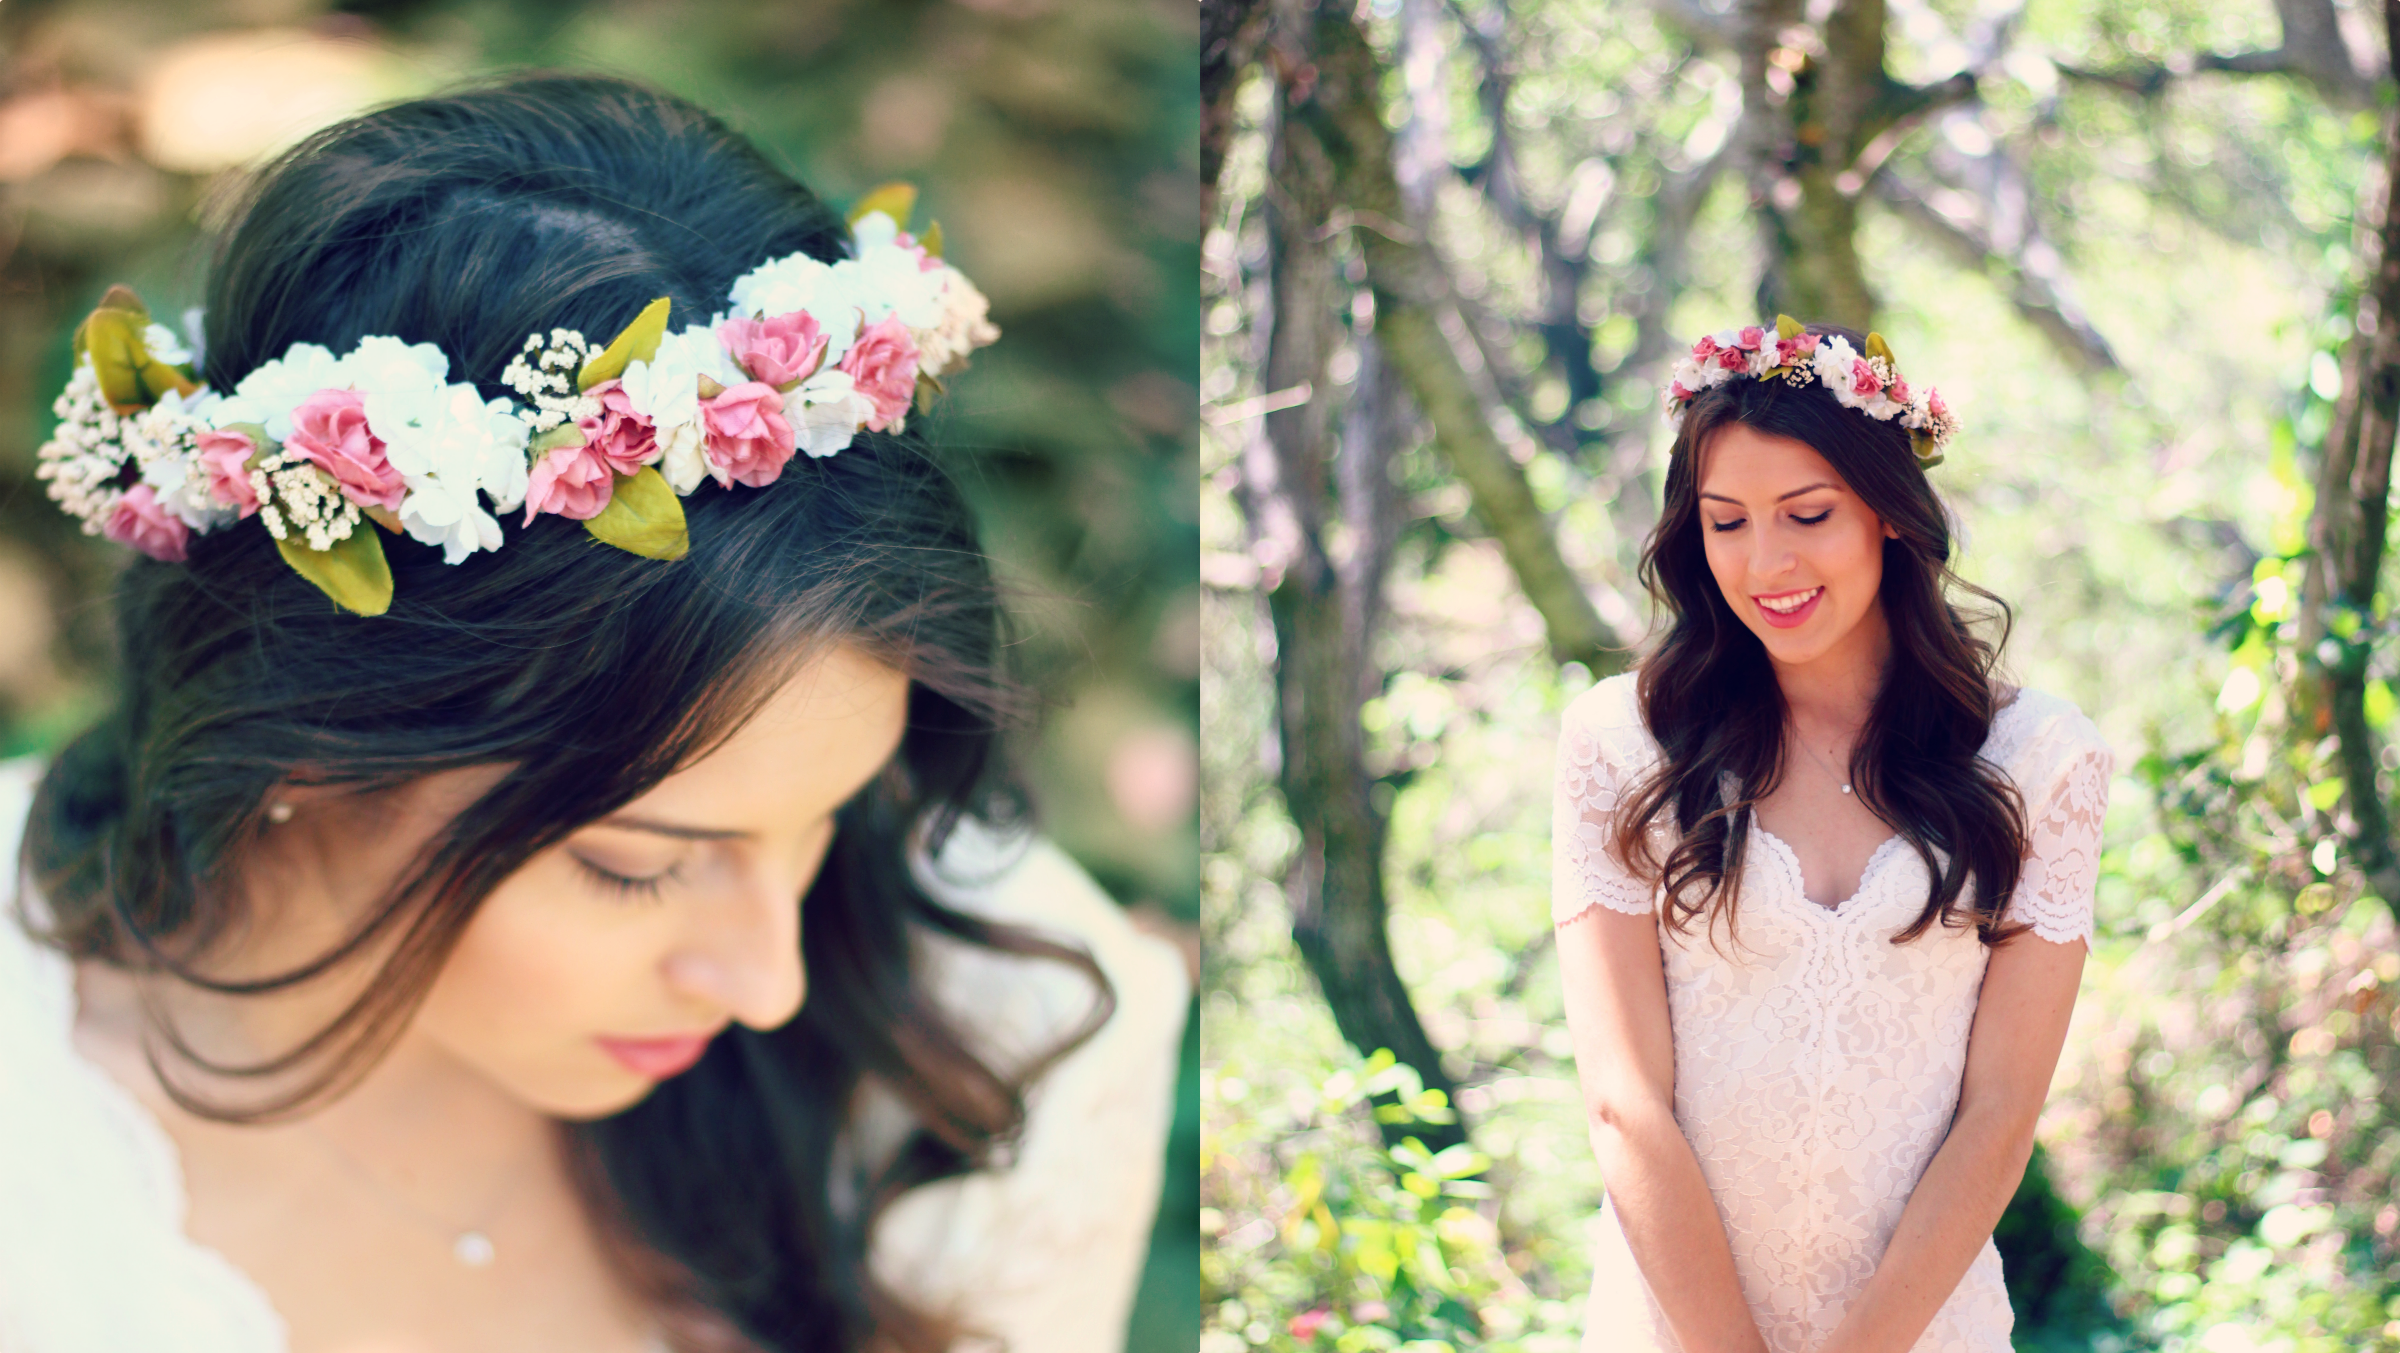 Diy tumblr flower crowns in the past few weeks it seems like my pinterest and tumblr feeds have been flooded with flower crowns and i can understand why these dainty yet statement izmirmasajfo